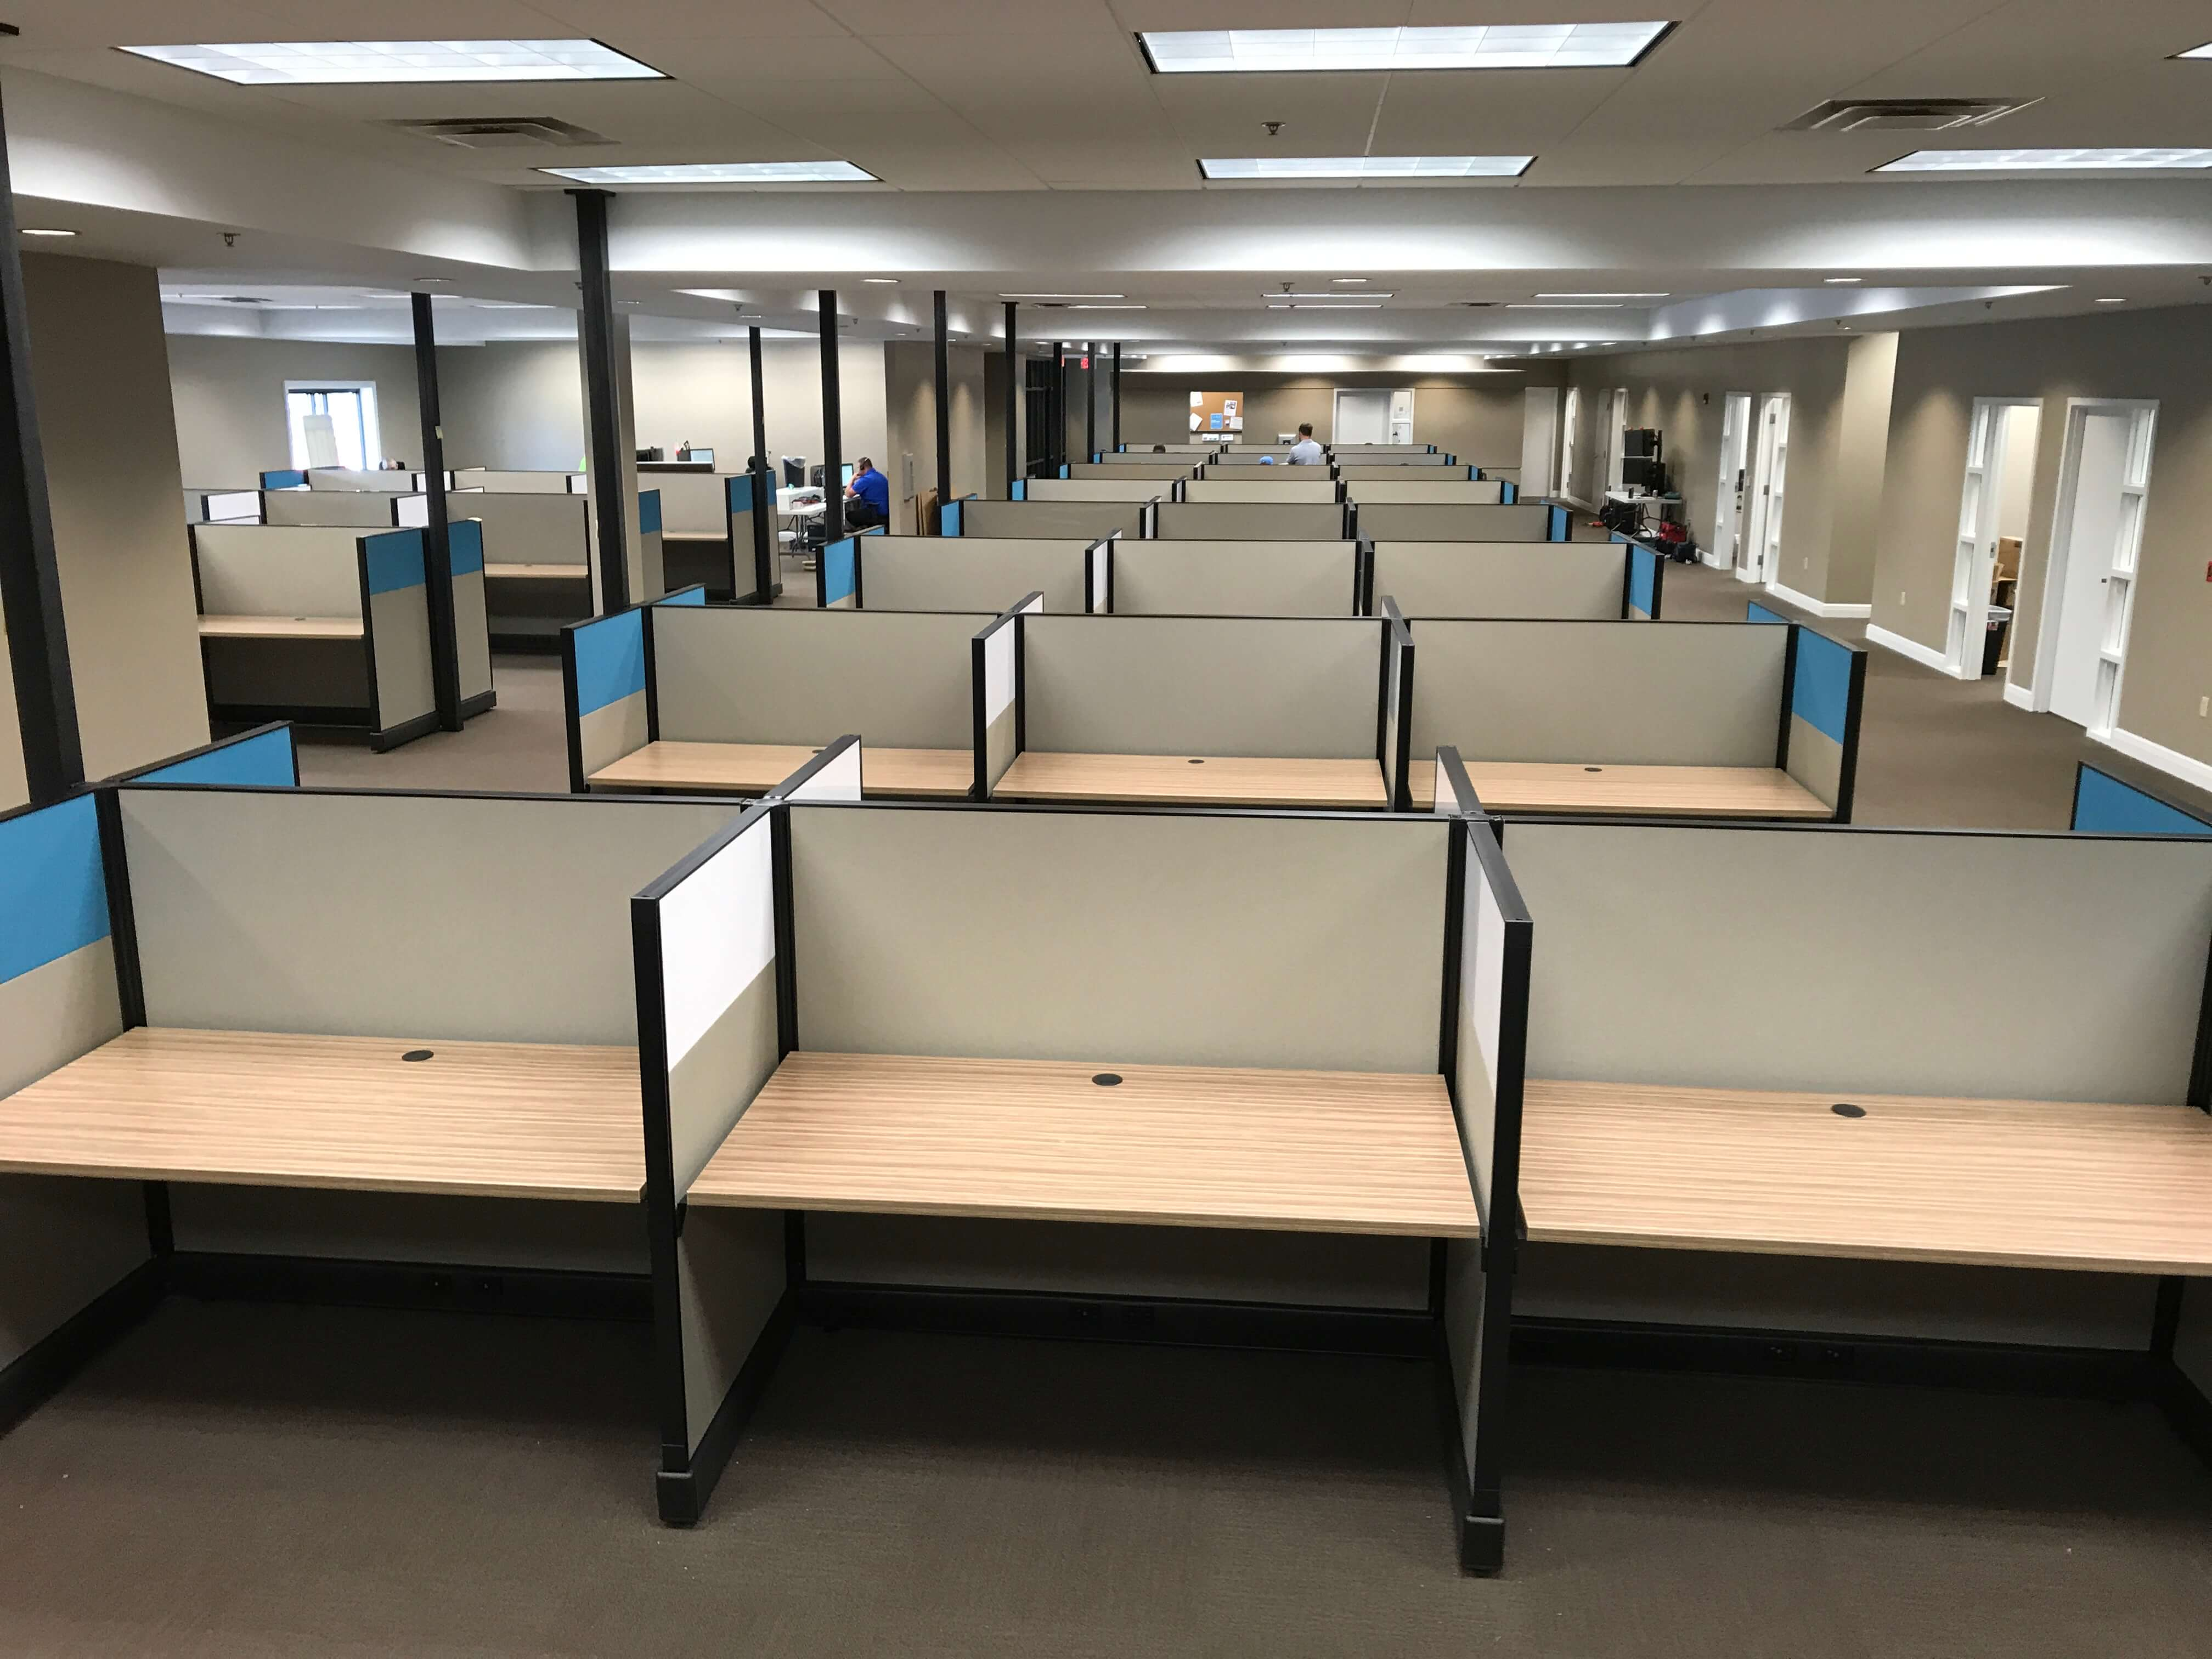 Office design furniture installation in ocala fl for